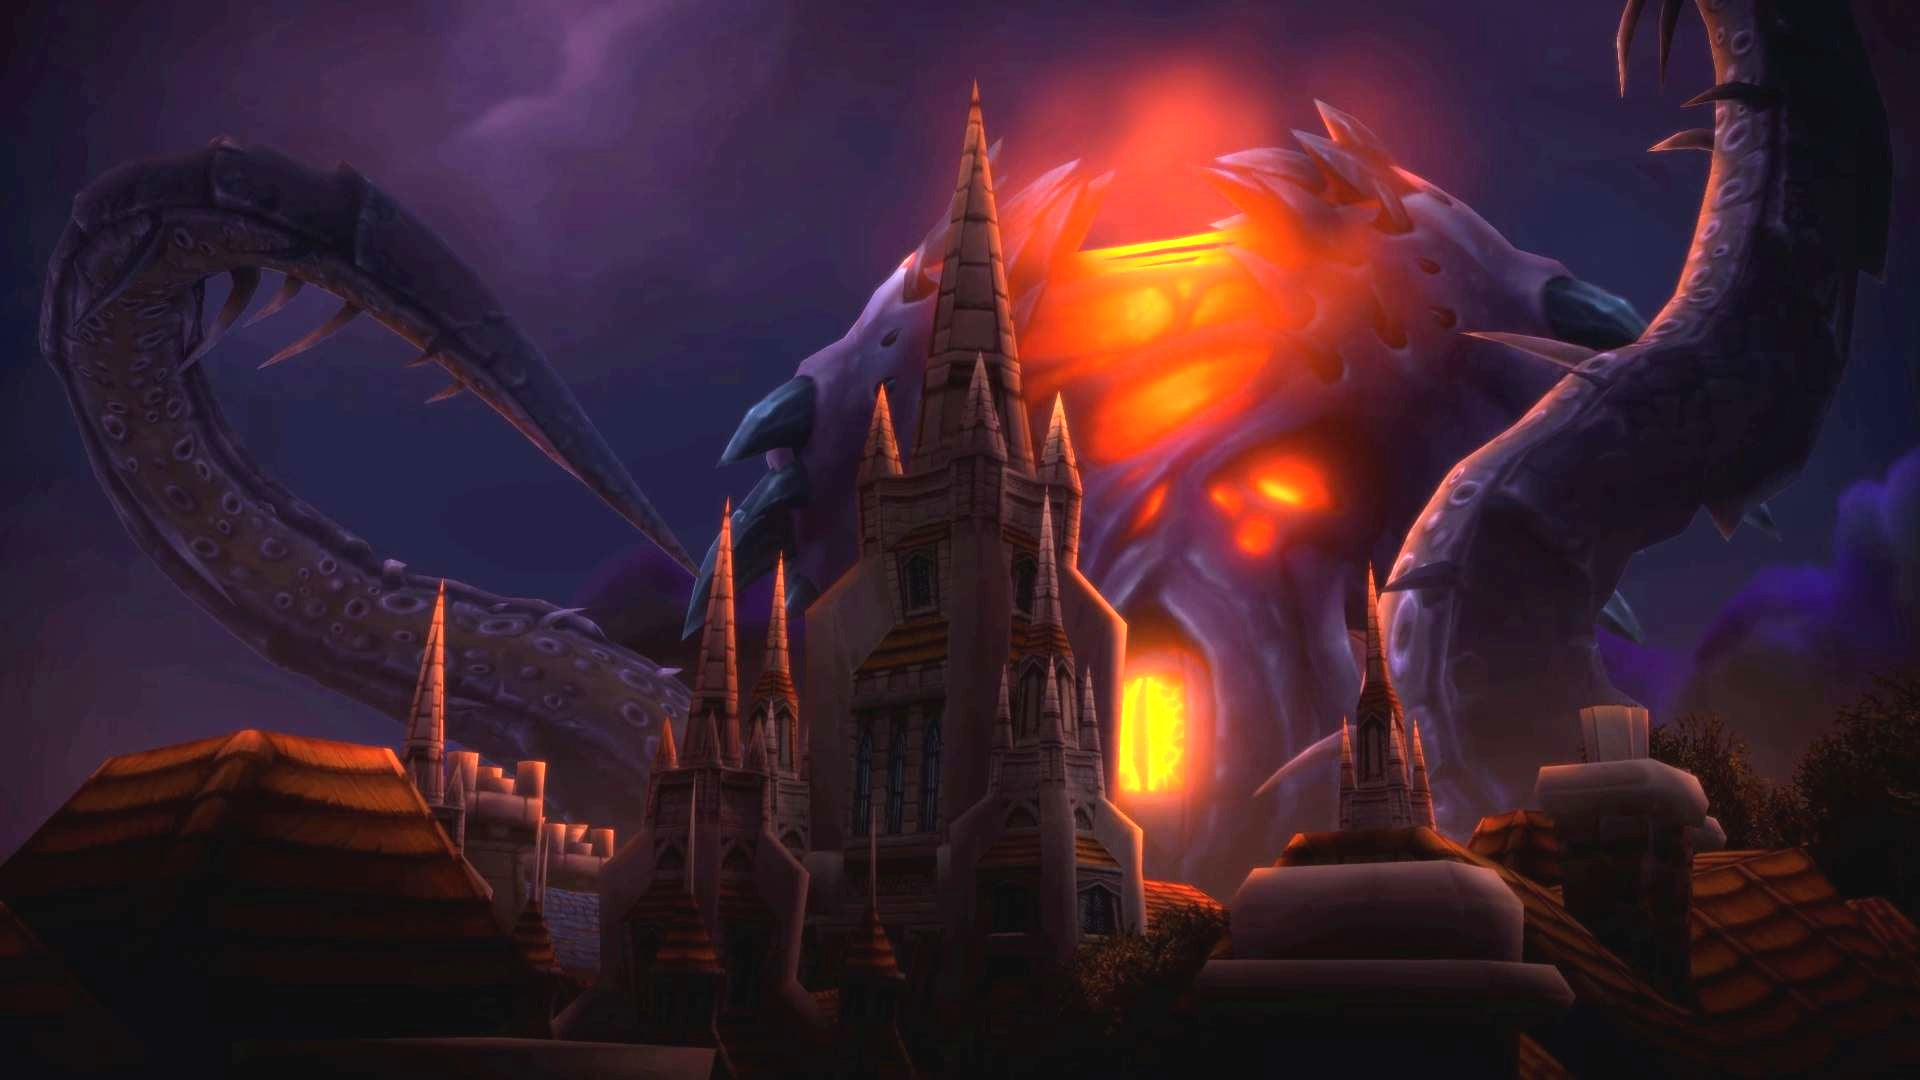 World Of Warcraft's Latest Boss Finally Goes Down After Glitchy, 10-Day Race Between Top Guilds